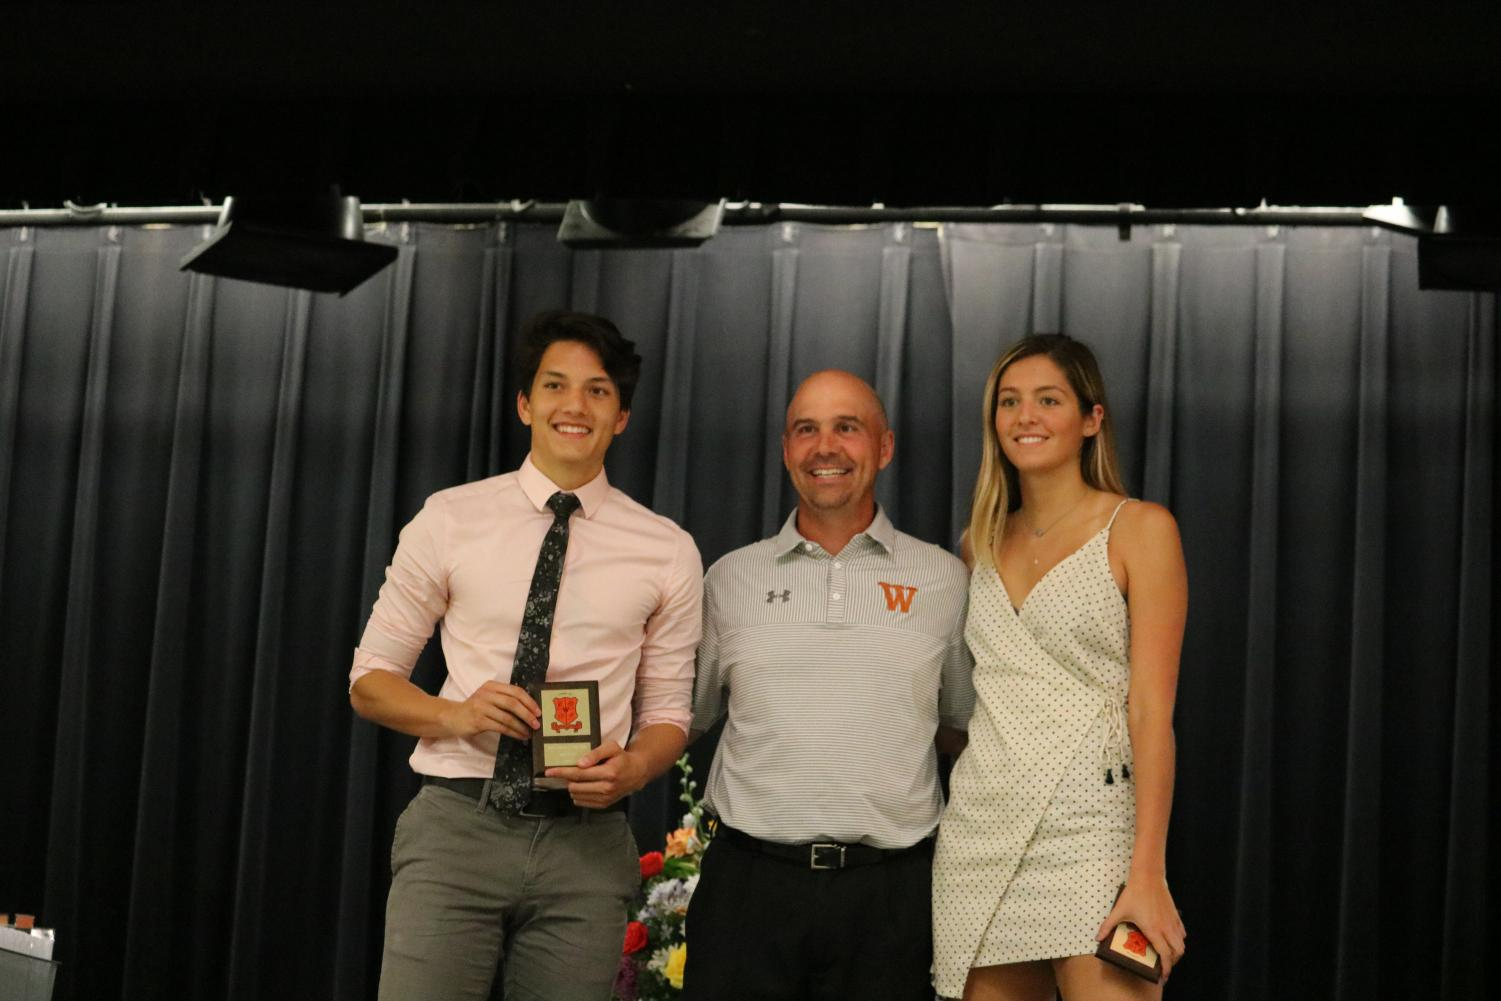 Coach+Anthony+Wood+presents+the+male+and+female+athlete+of+the+year+award+to+seniors+Jack+Elliott+and+Maddi+Kriz.